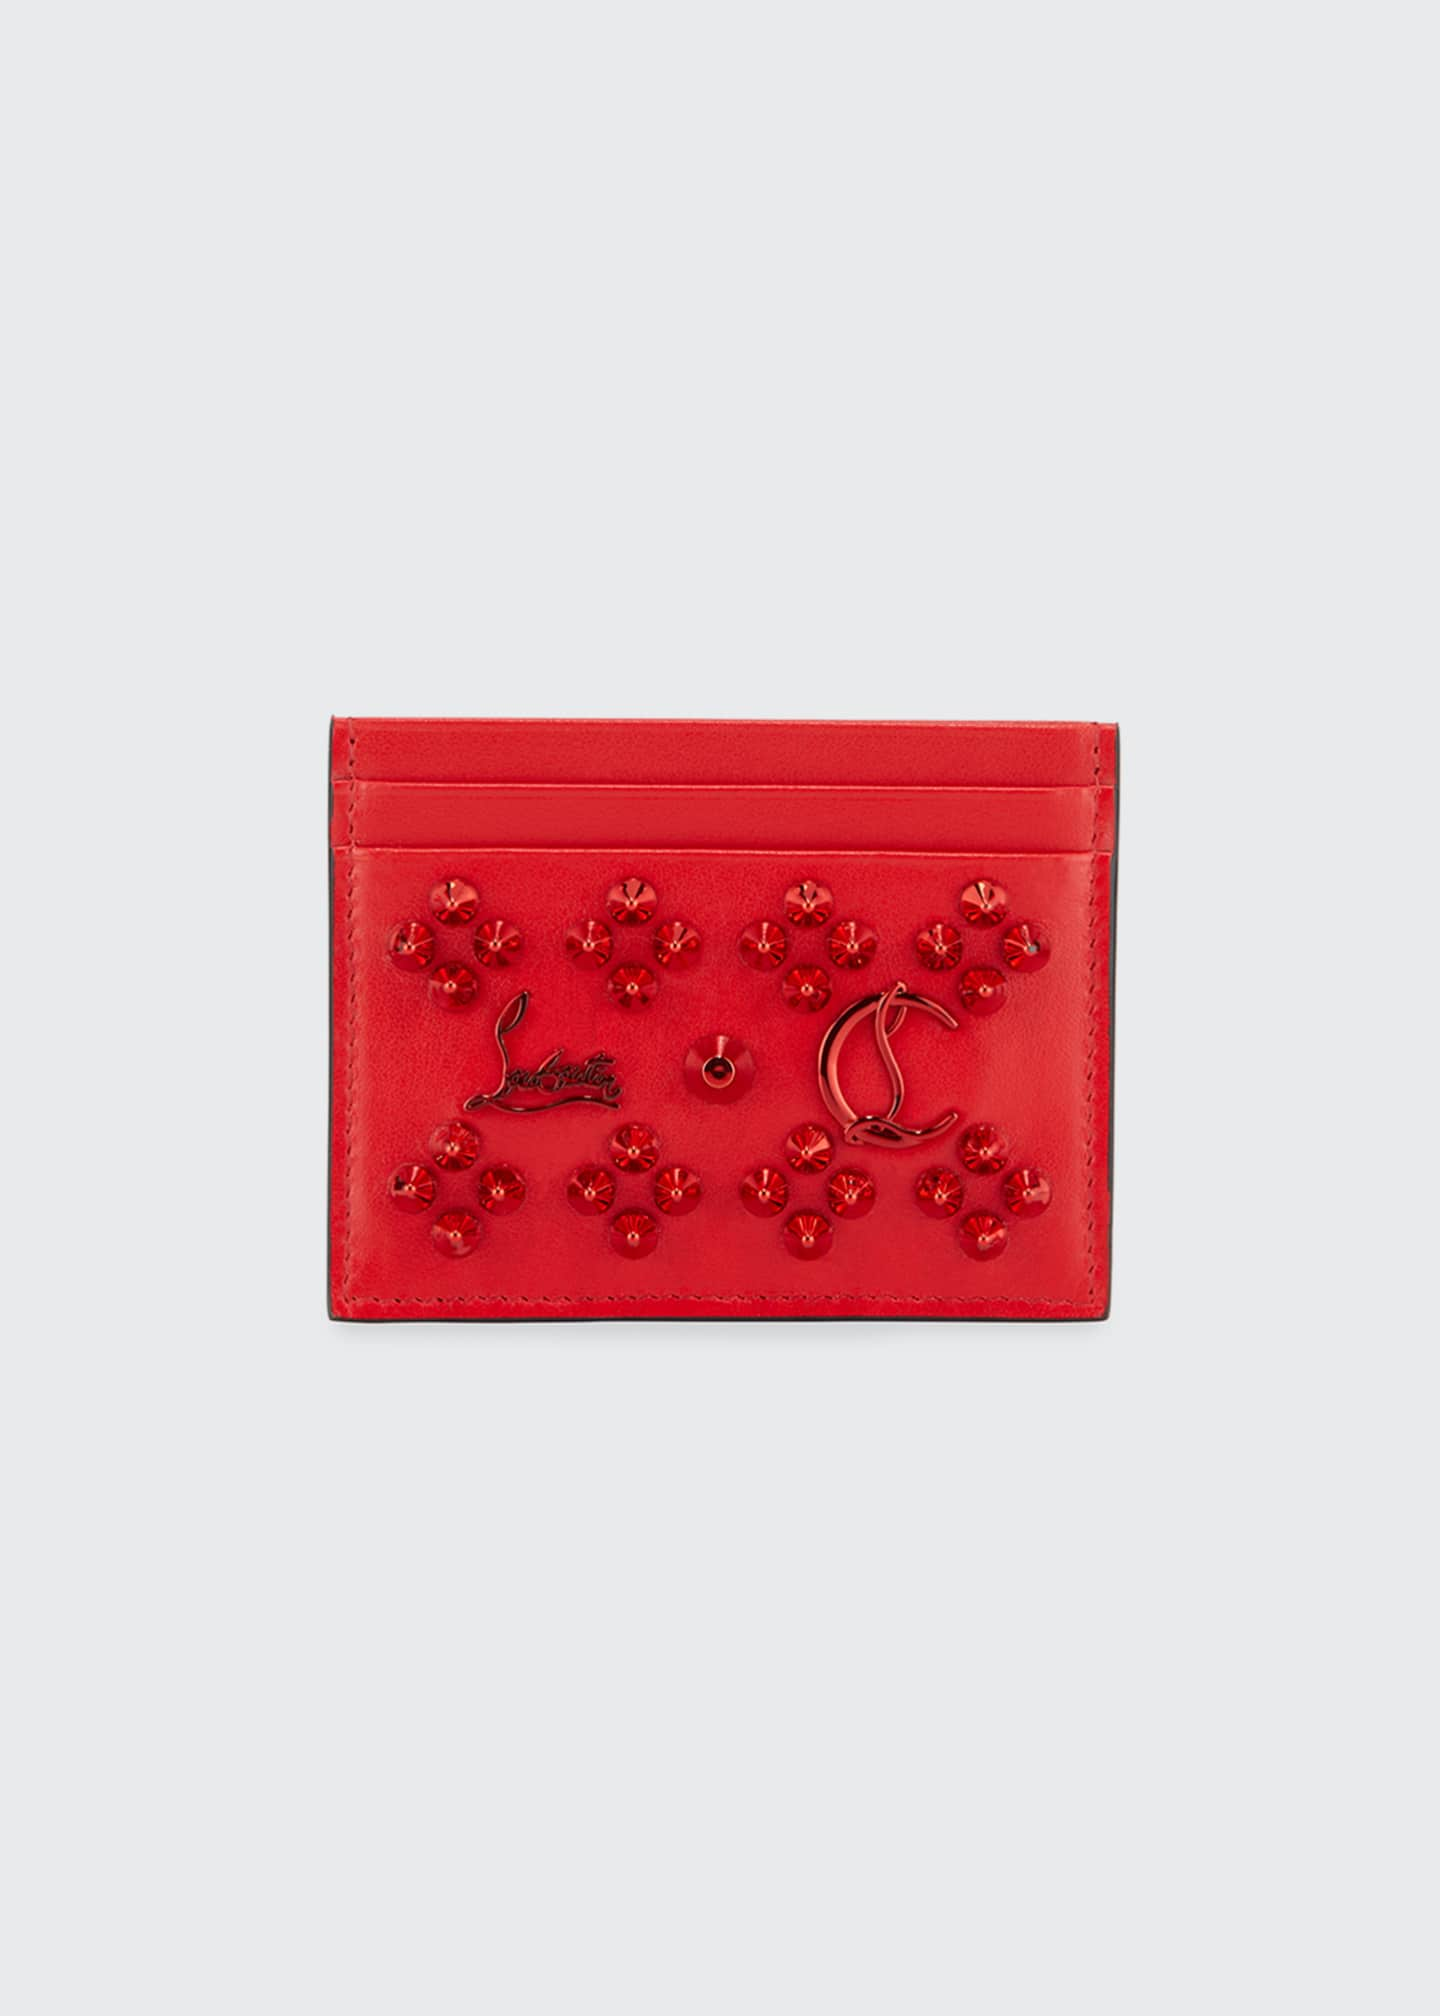 Christian Louboutin Kios Jeweled Leather Card Case